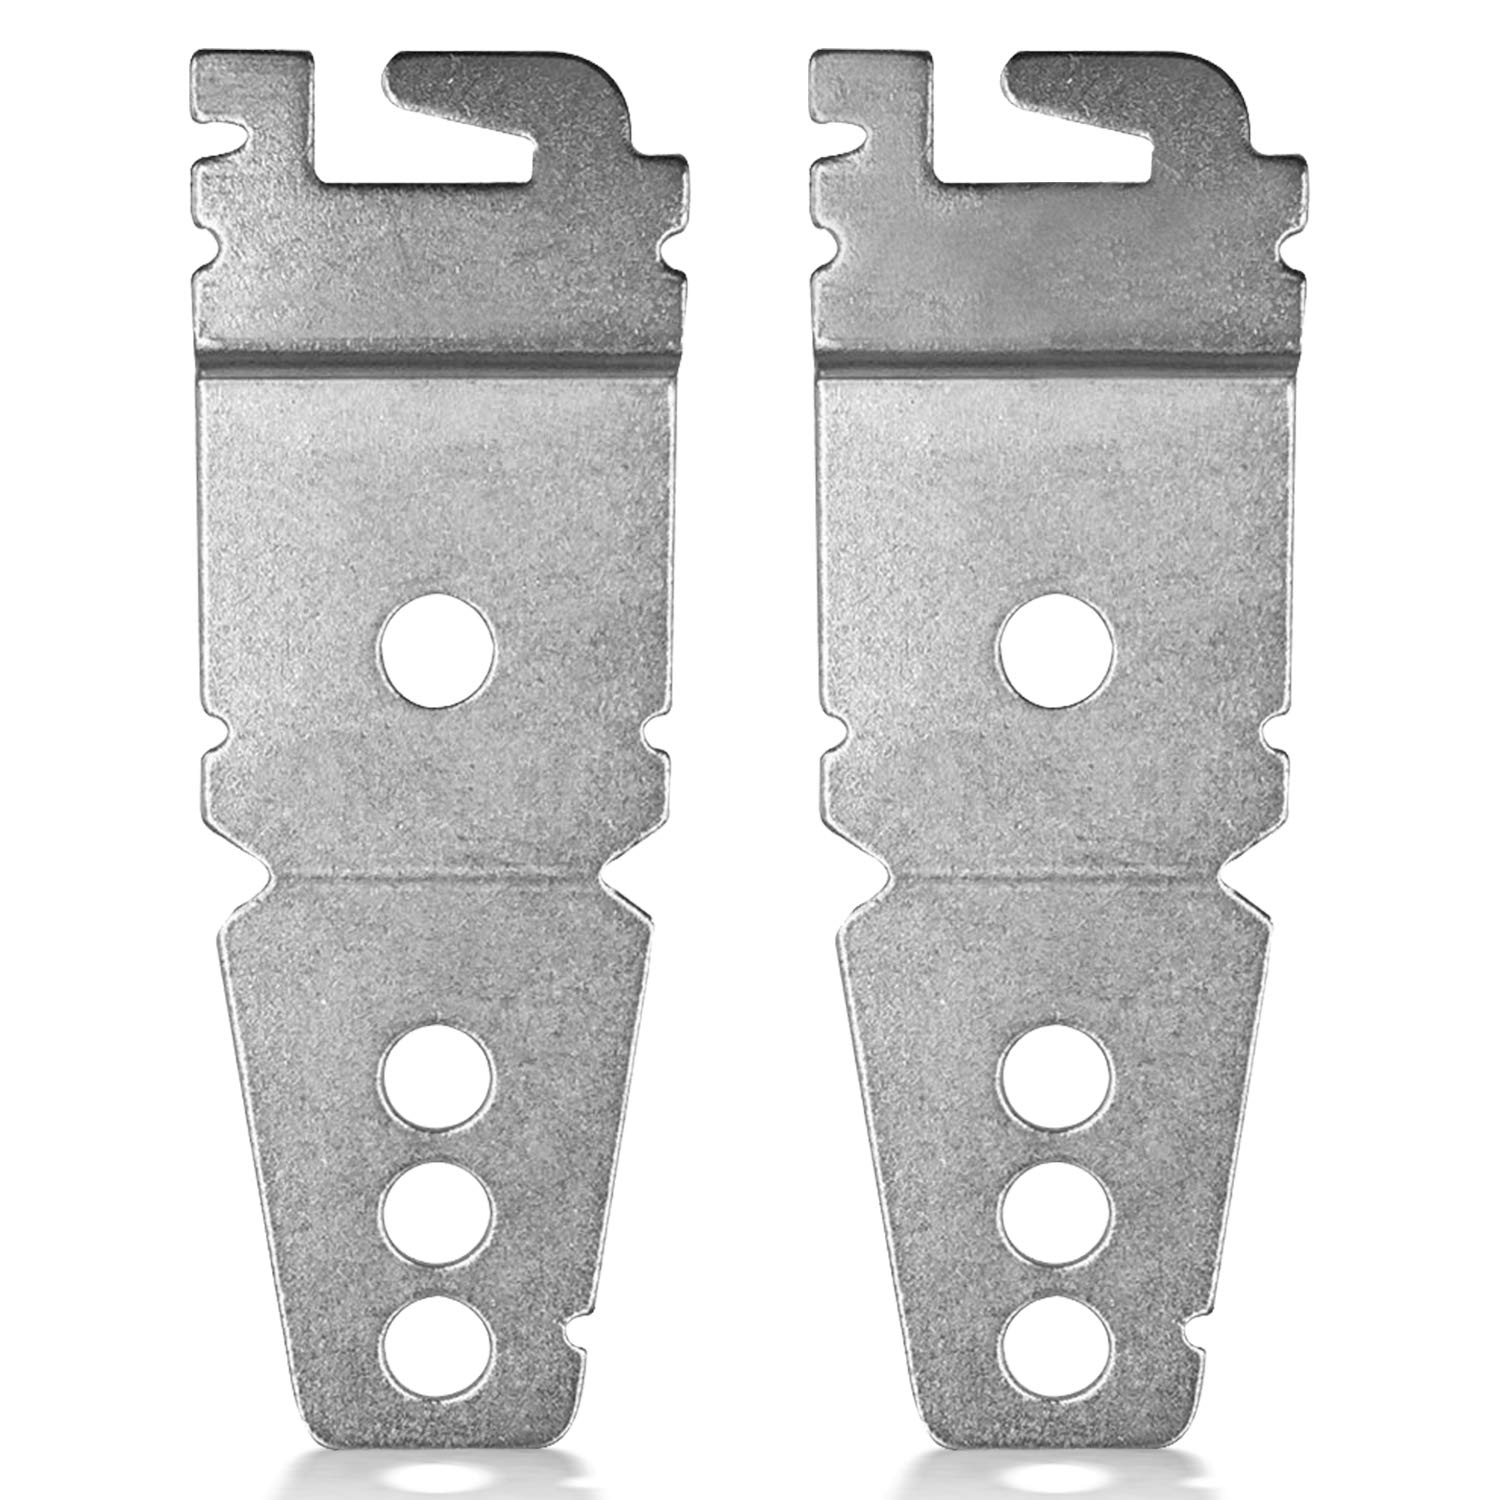 2-Pack Undercounter Dishwasher Bracket Replacement - Whirlpool -Compatible - Compare to 8269145 / WP8269145 - Replacement Dishwasher Upper Mounting Bracket 71UUi2BzUfTL